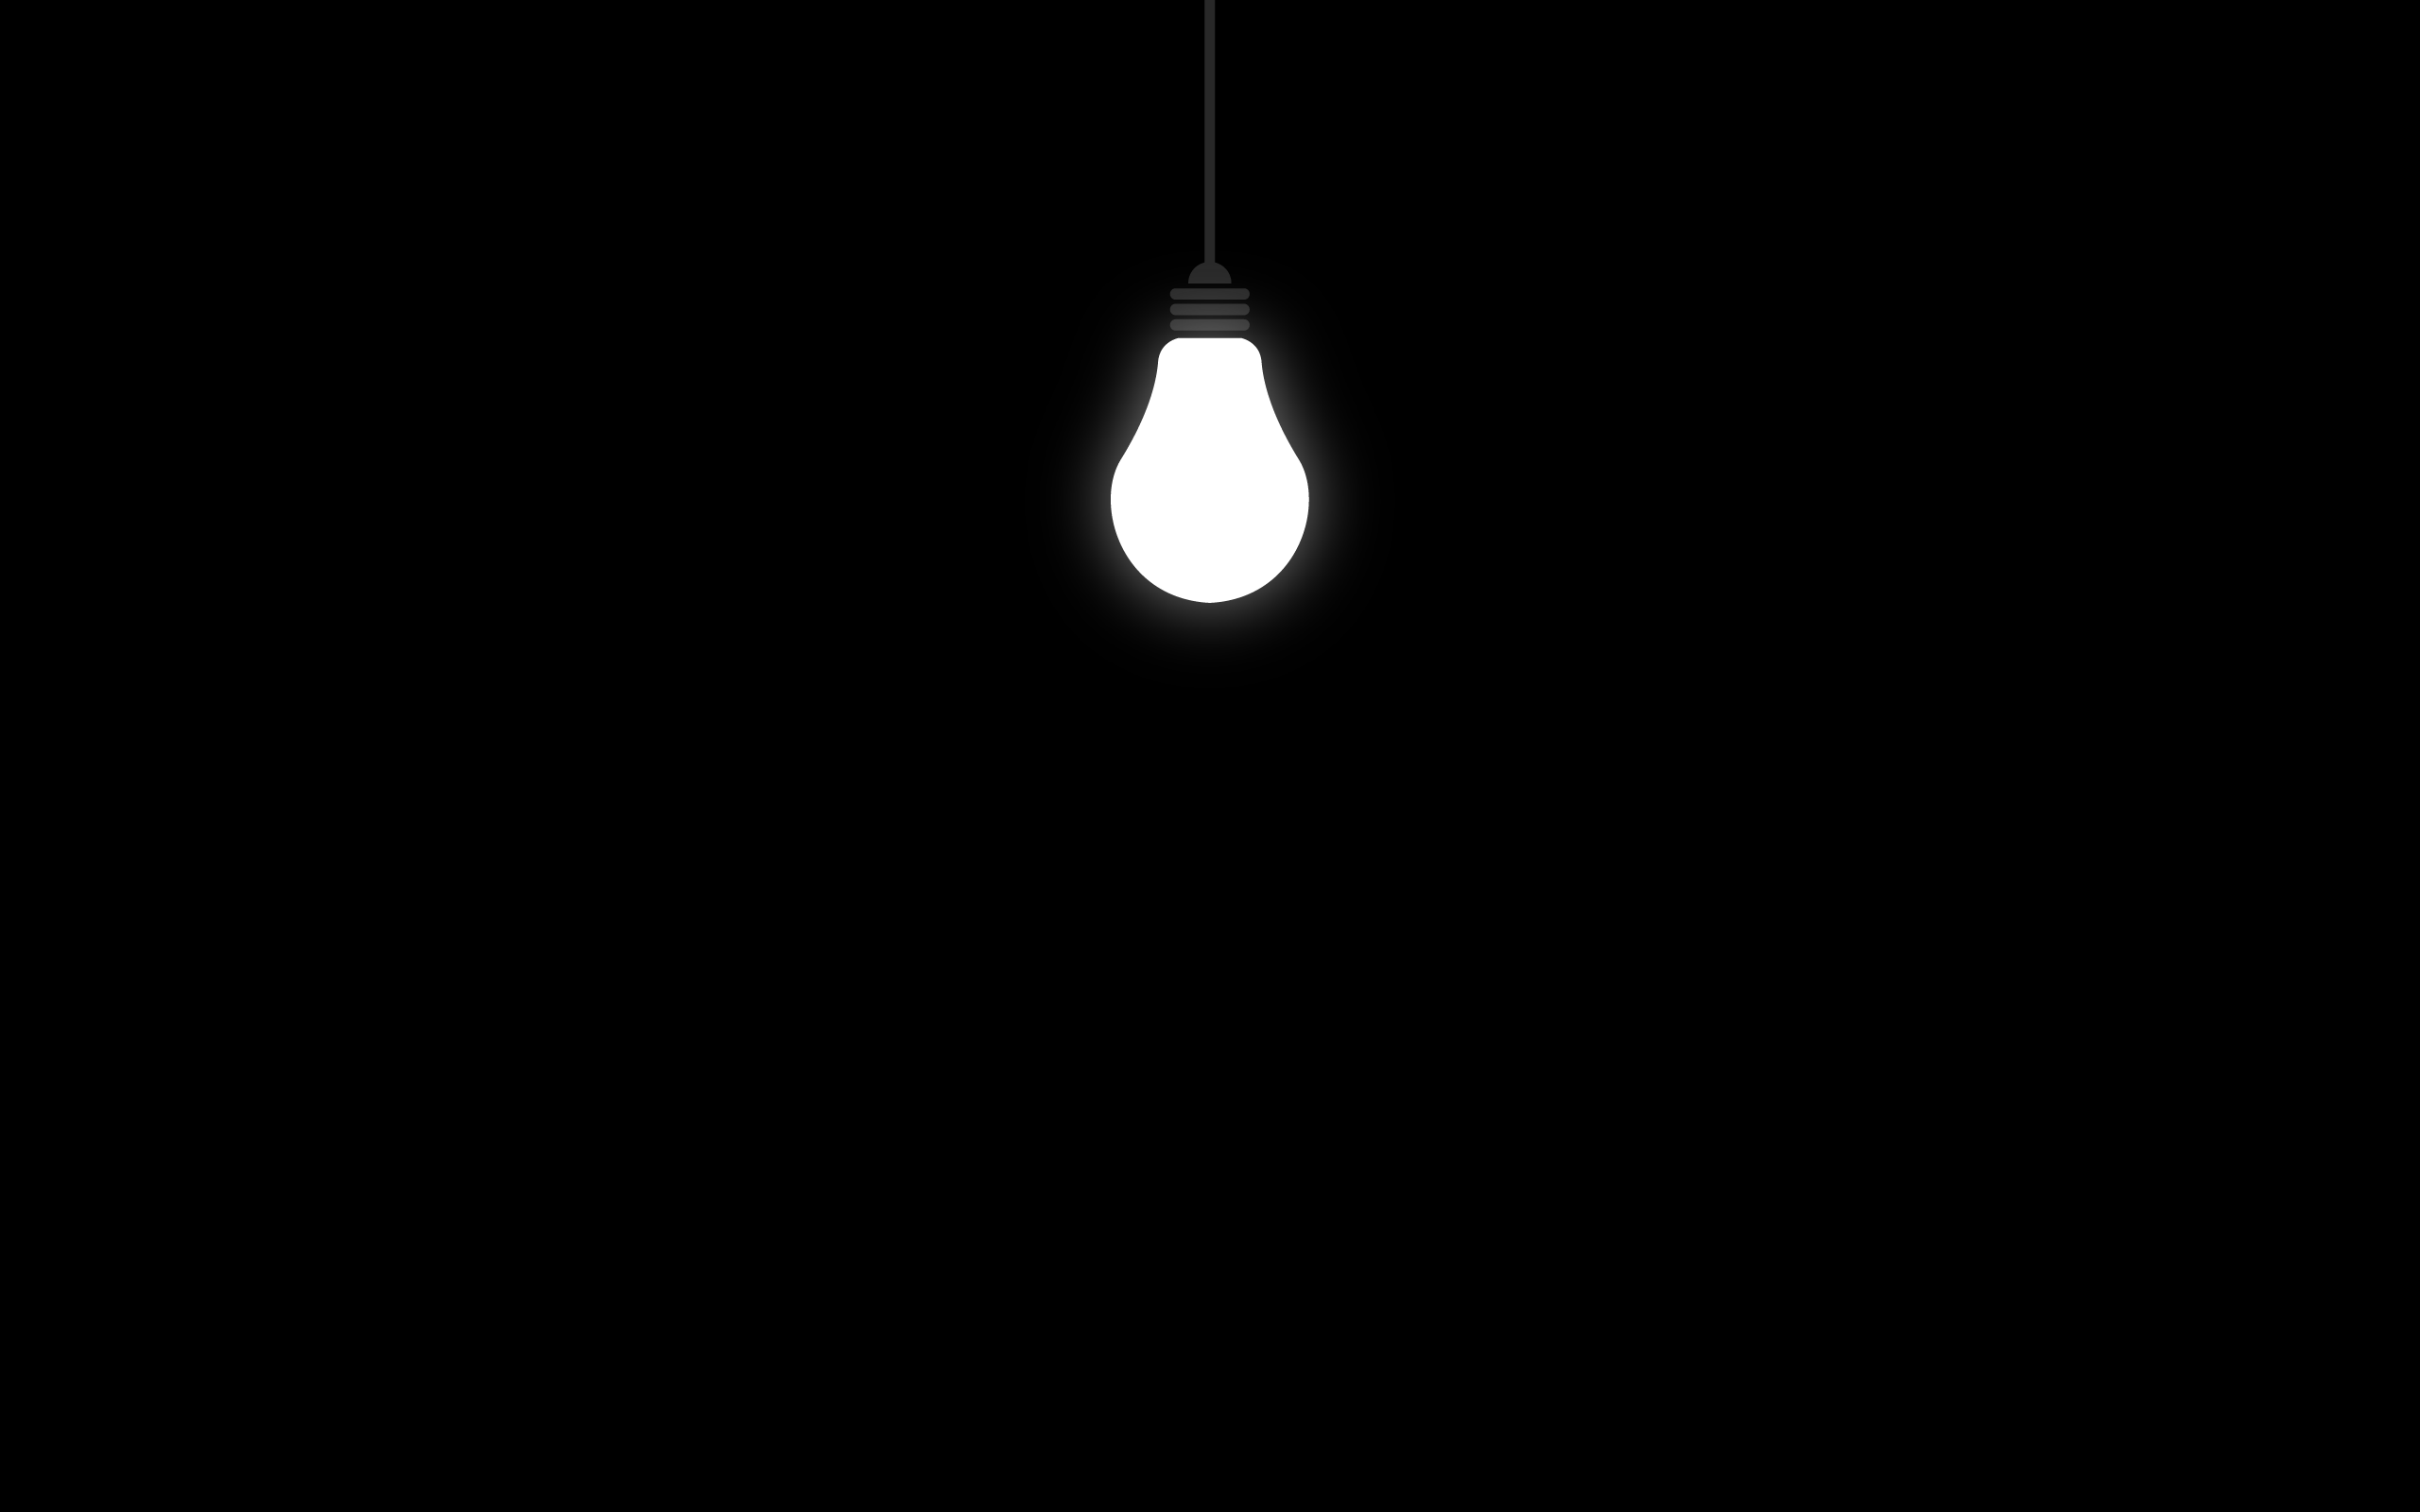 Hd wallpaper with black background - Lonely Light Bulb